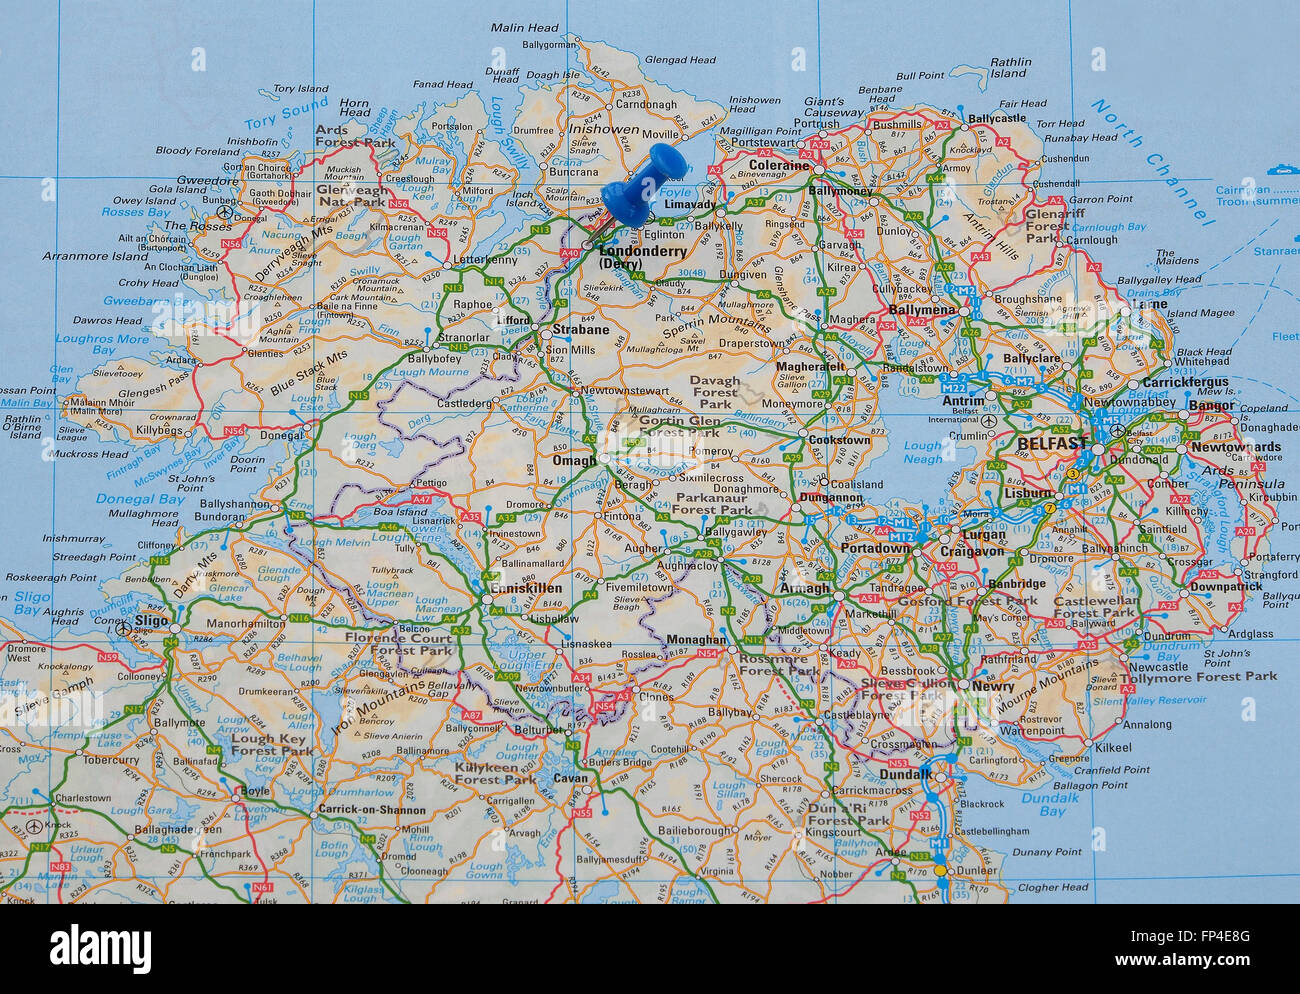 road map of northern ireland with a map pin indicating belfast